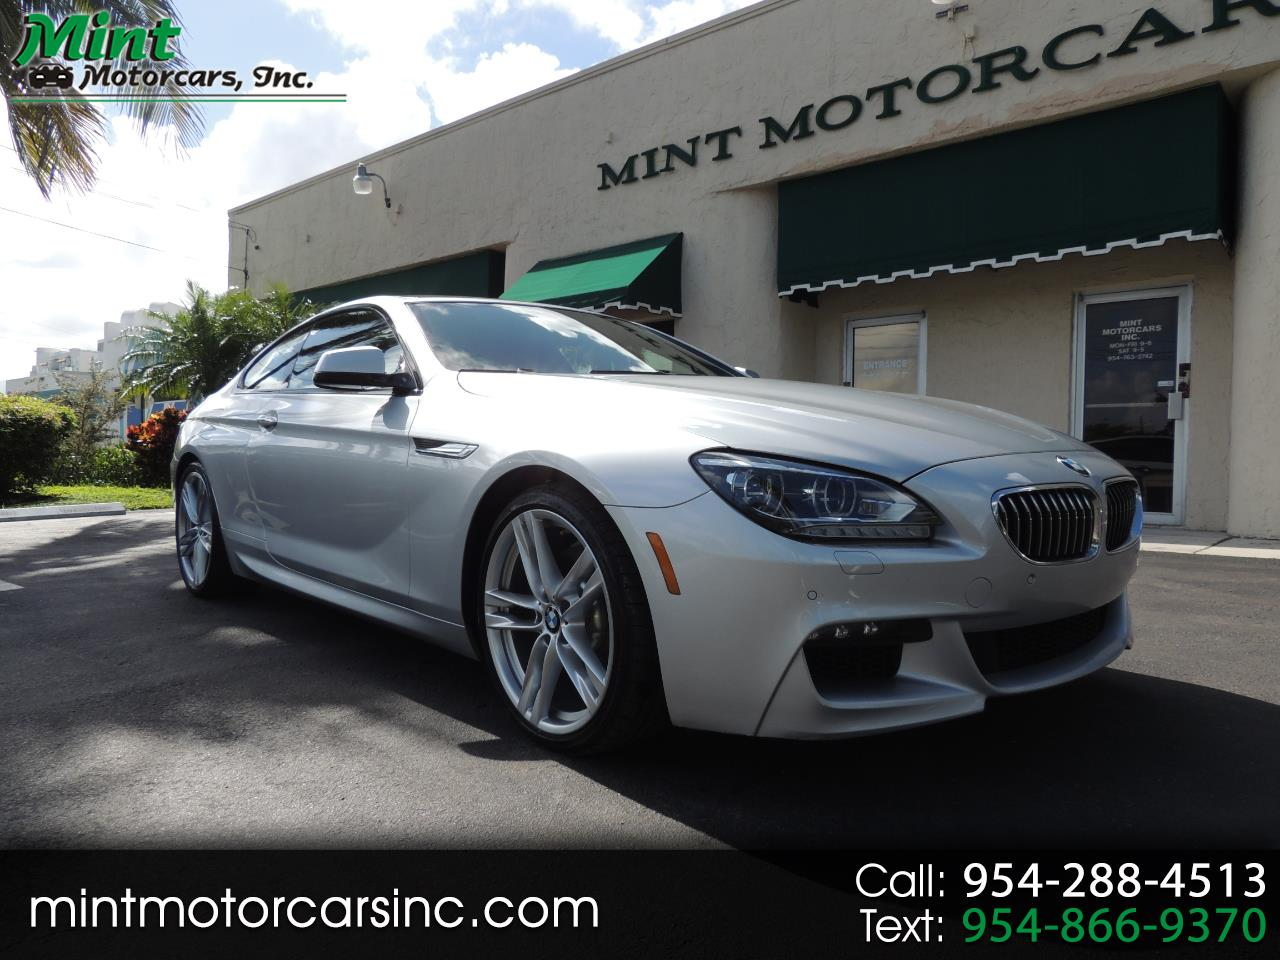 2014 BMW 6-Series 640i Coupe